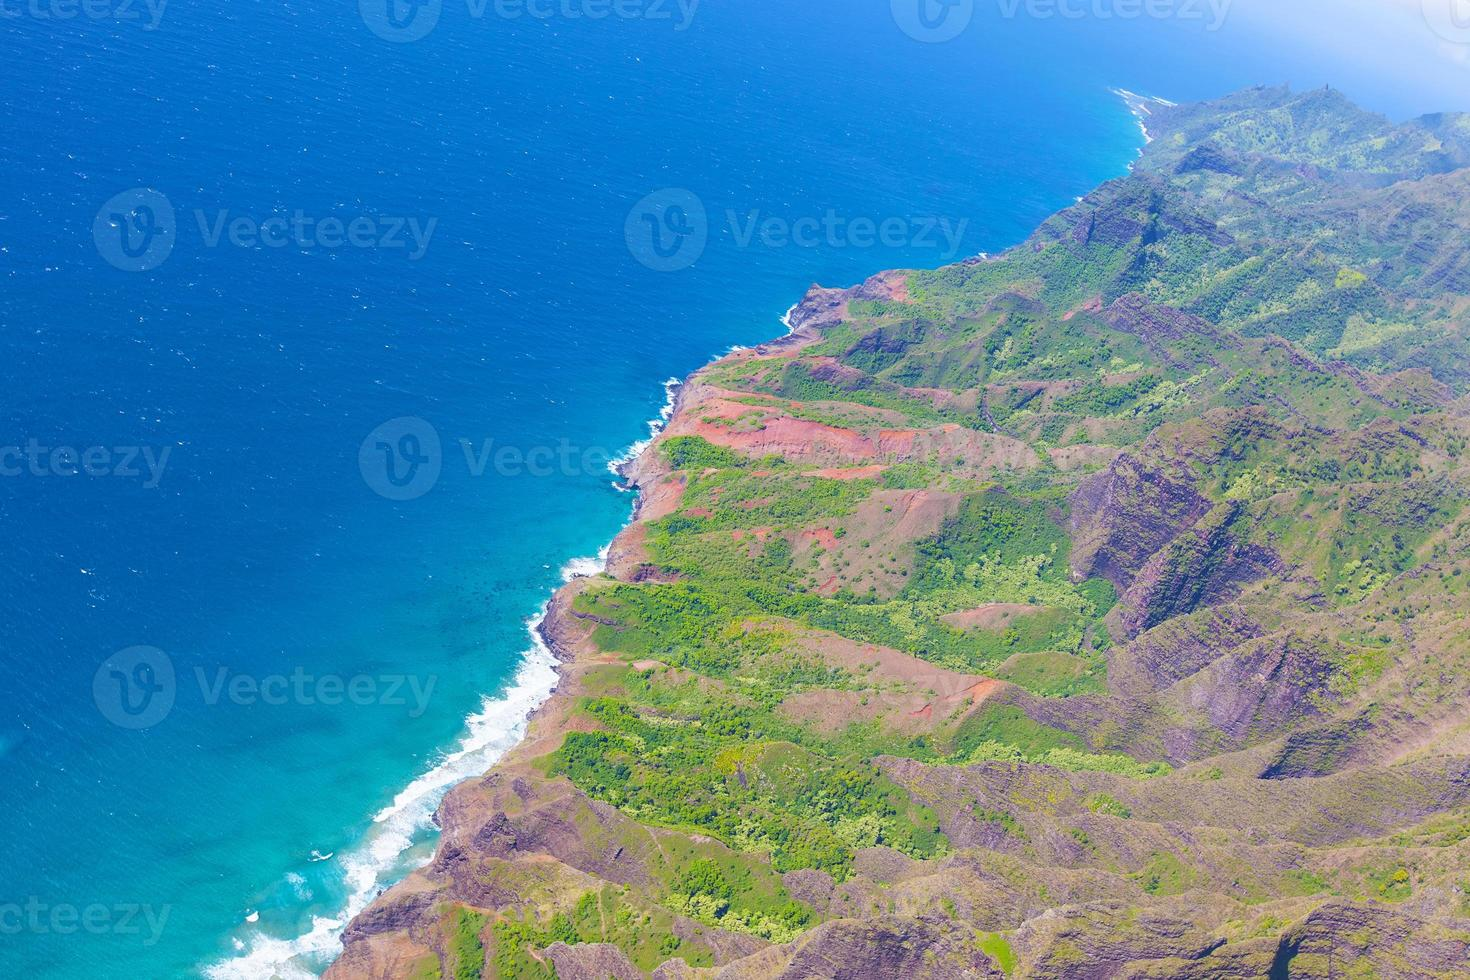 kauai view from helicopter photo